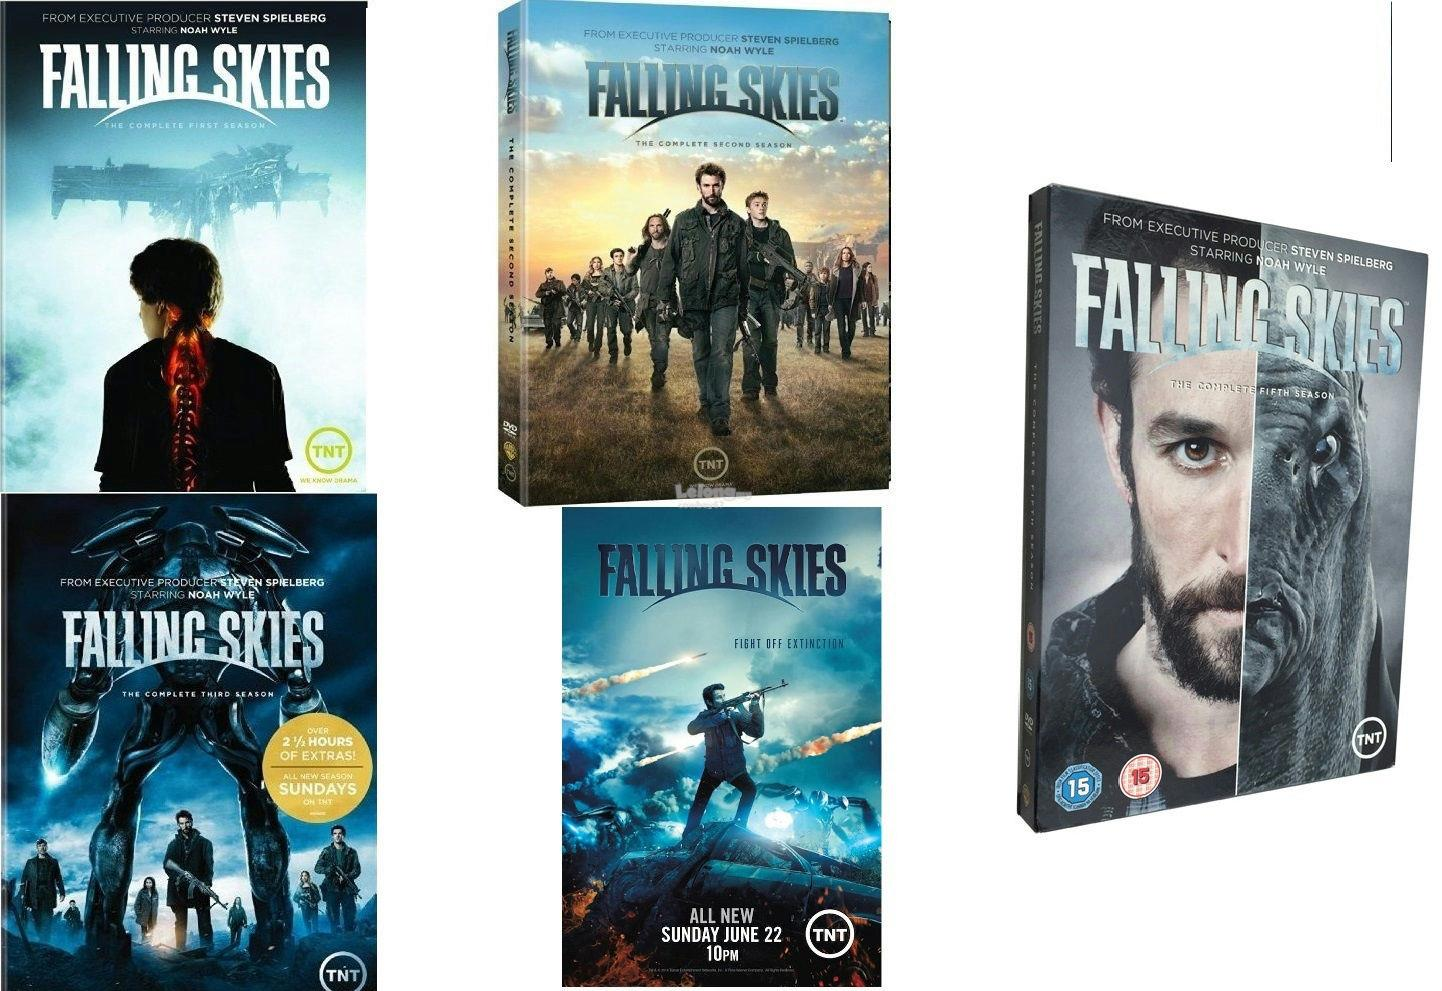 Falling Skies - The Complete Series - New DVD Box Set